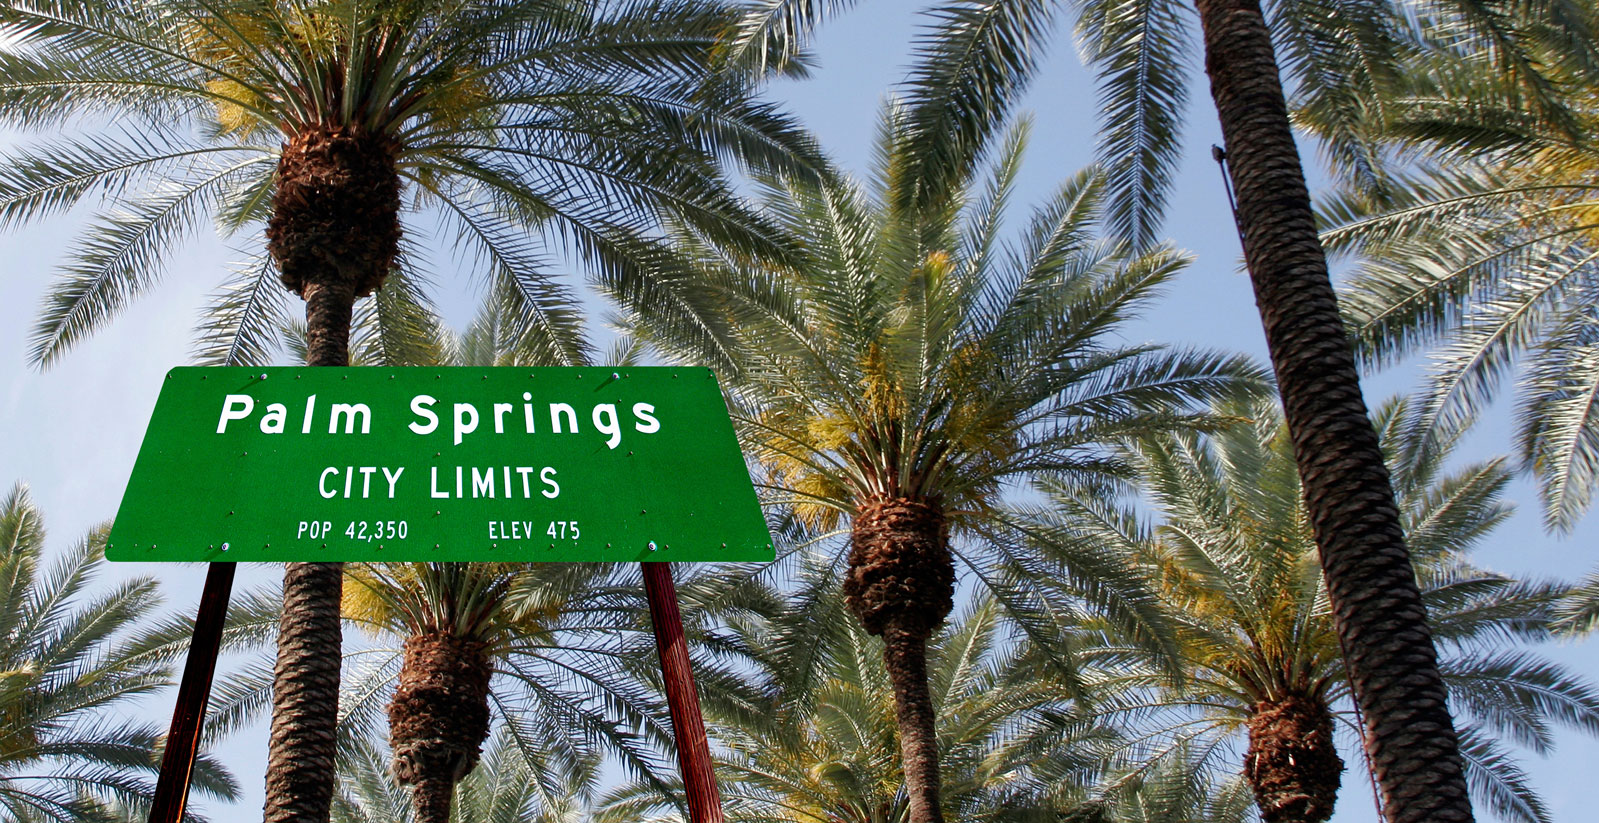 palm springs city limits sign